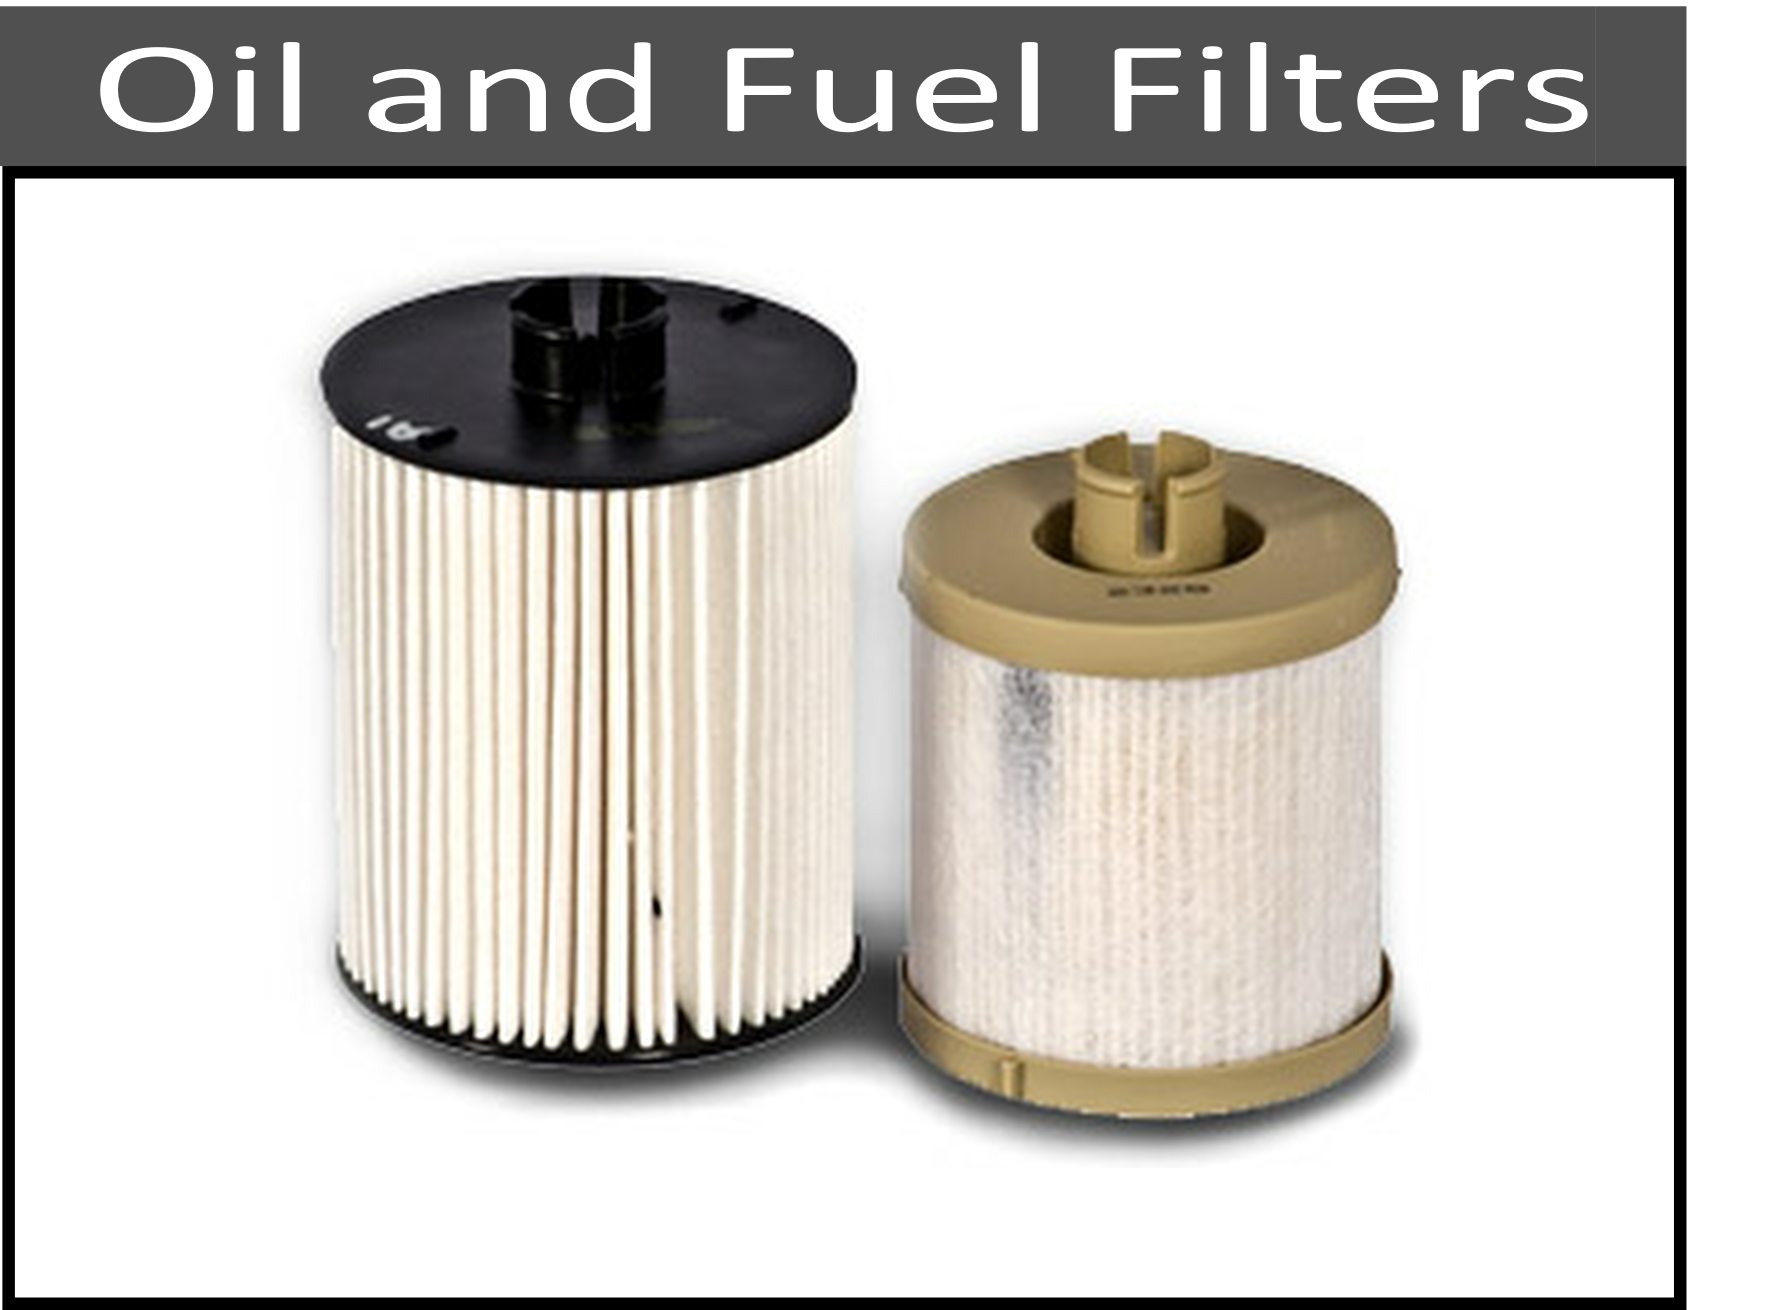 Oil and Fuel Filters